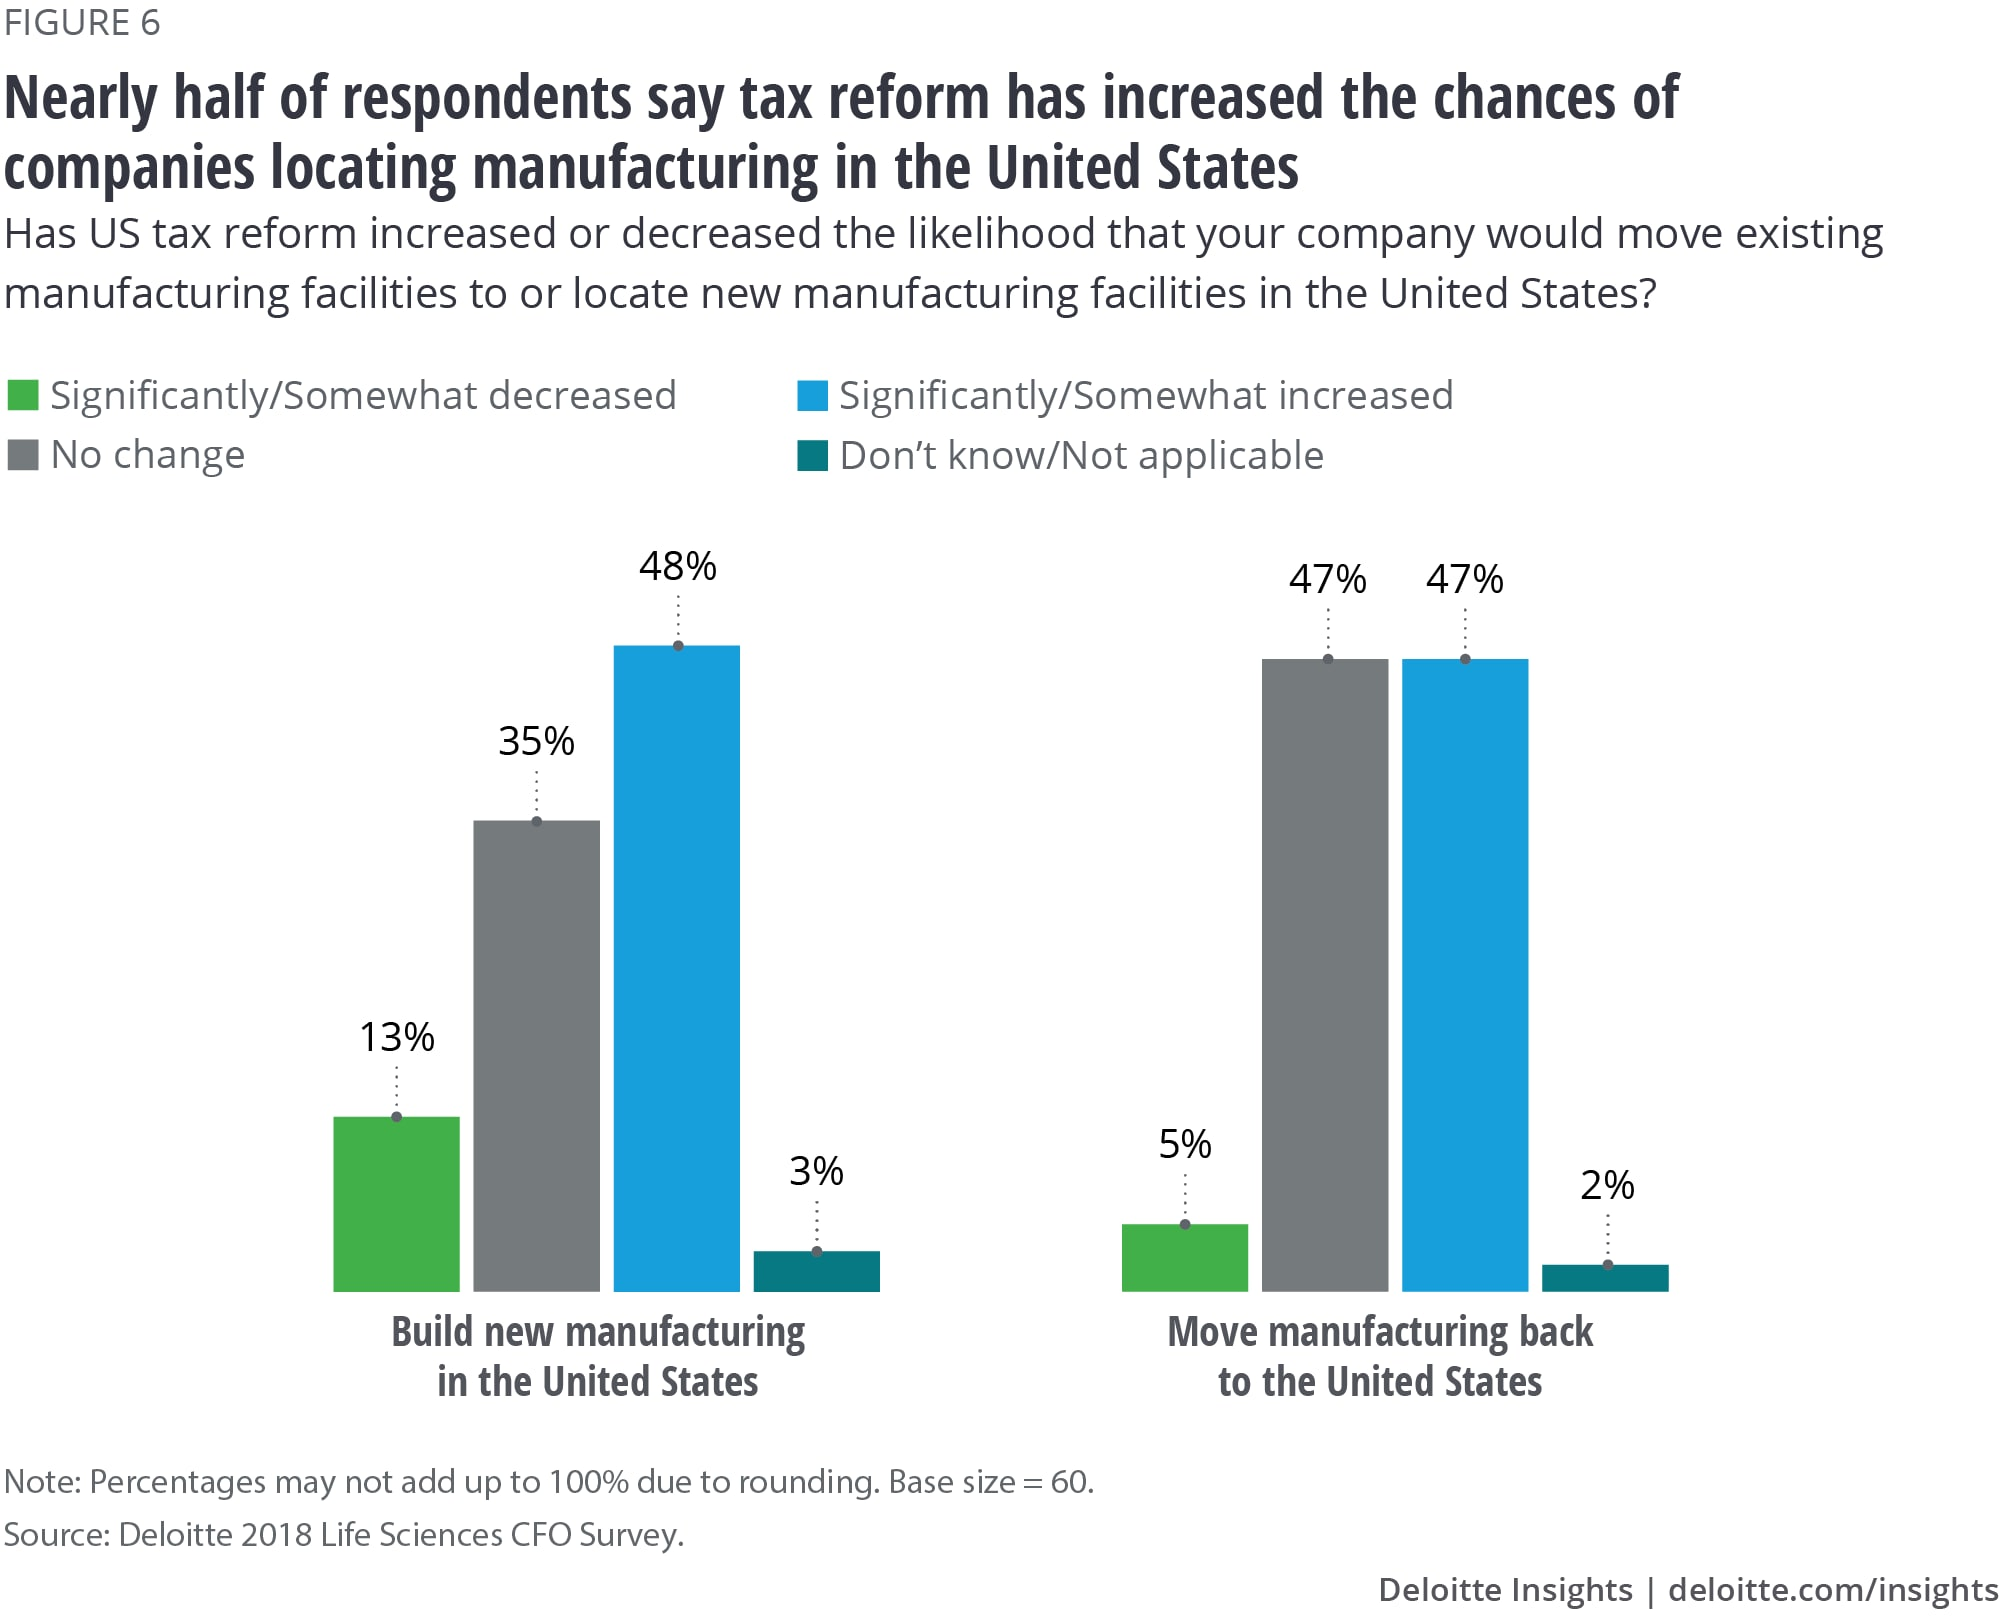 Nearly half of respondents say tax reform has increased the chances of companies locating manufacturing in the United States